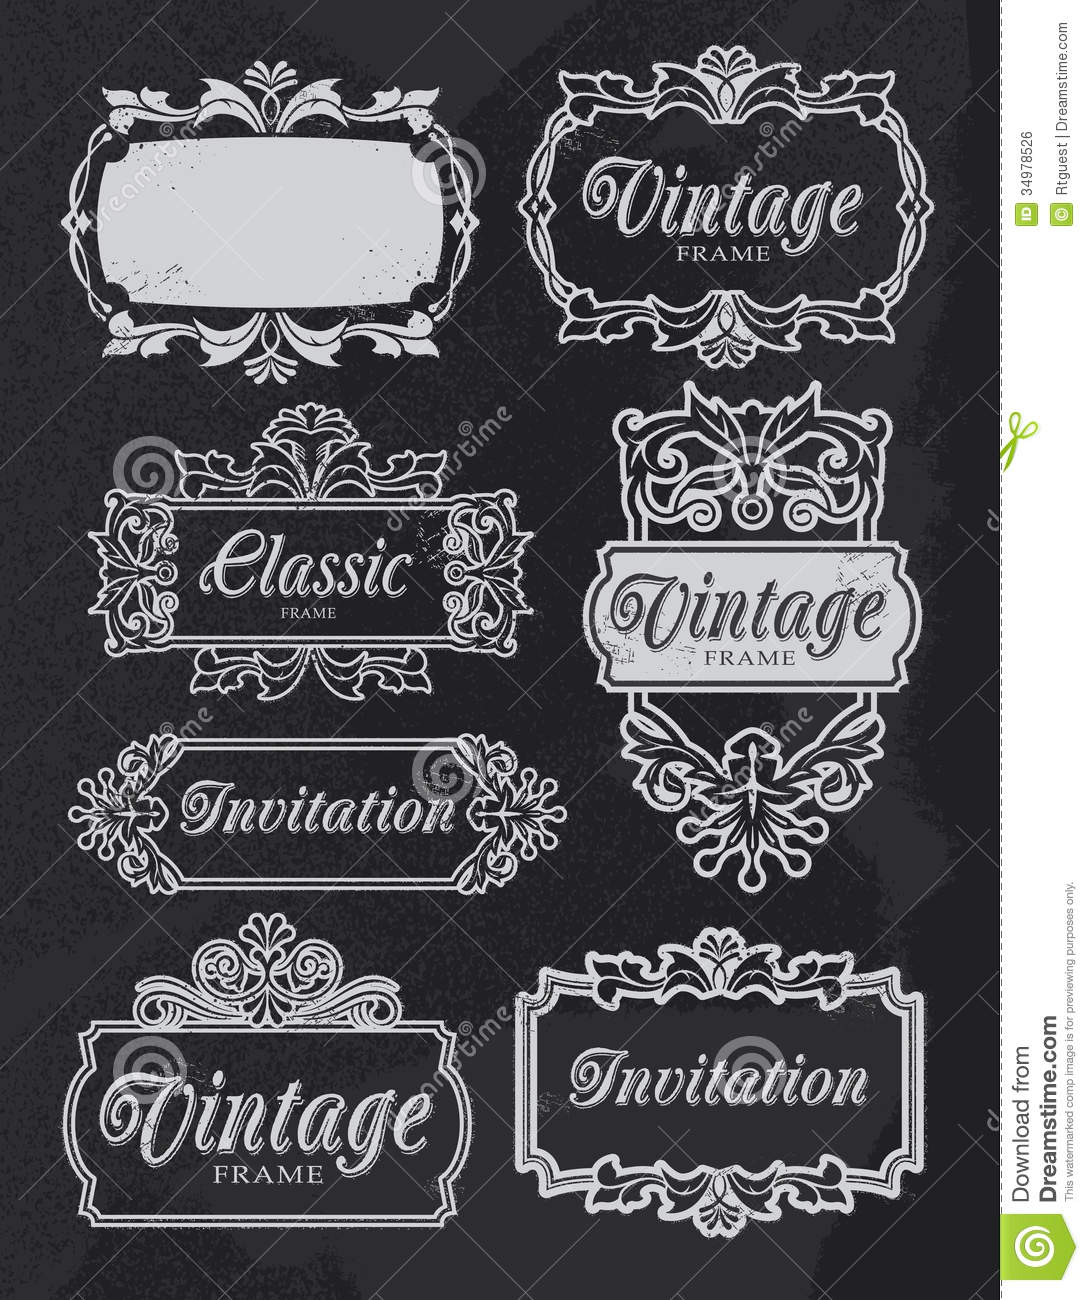 Home Design Ideas Blackboard: Vintage Chalkboard Banner Frames Stock Vector